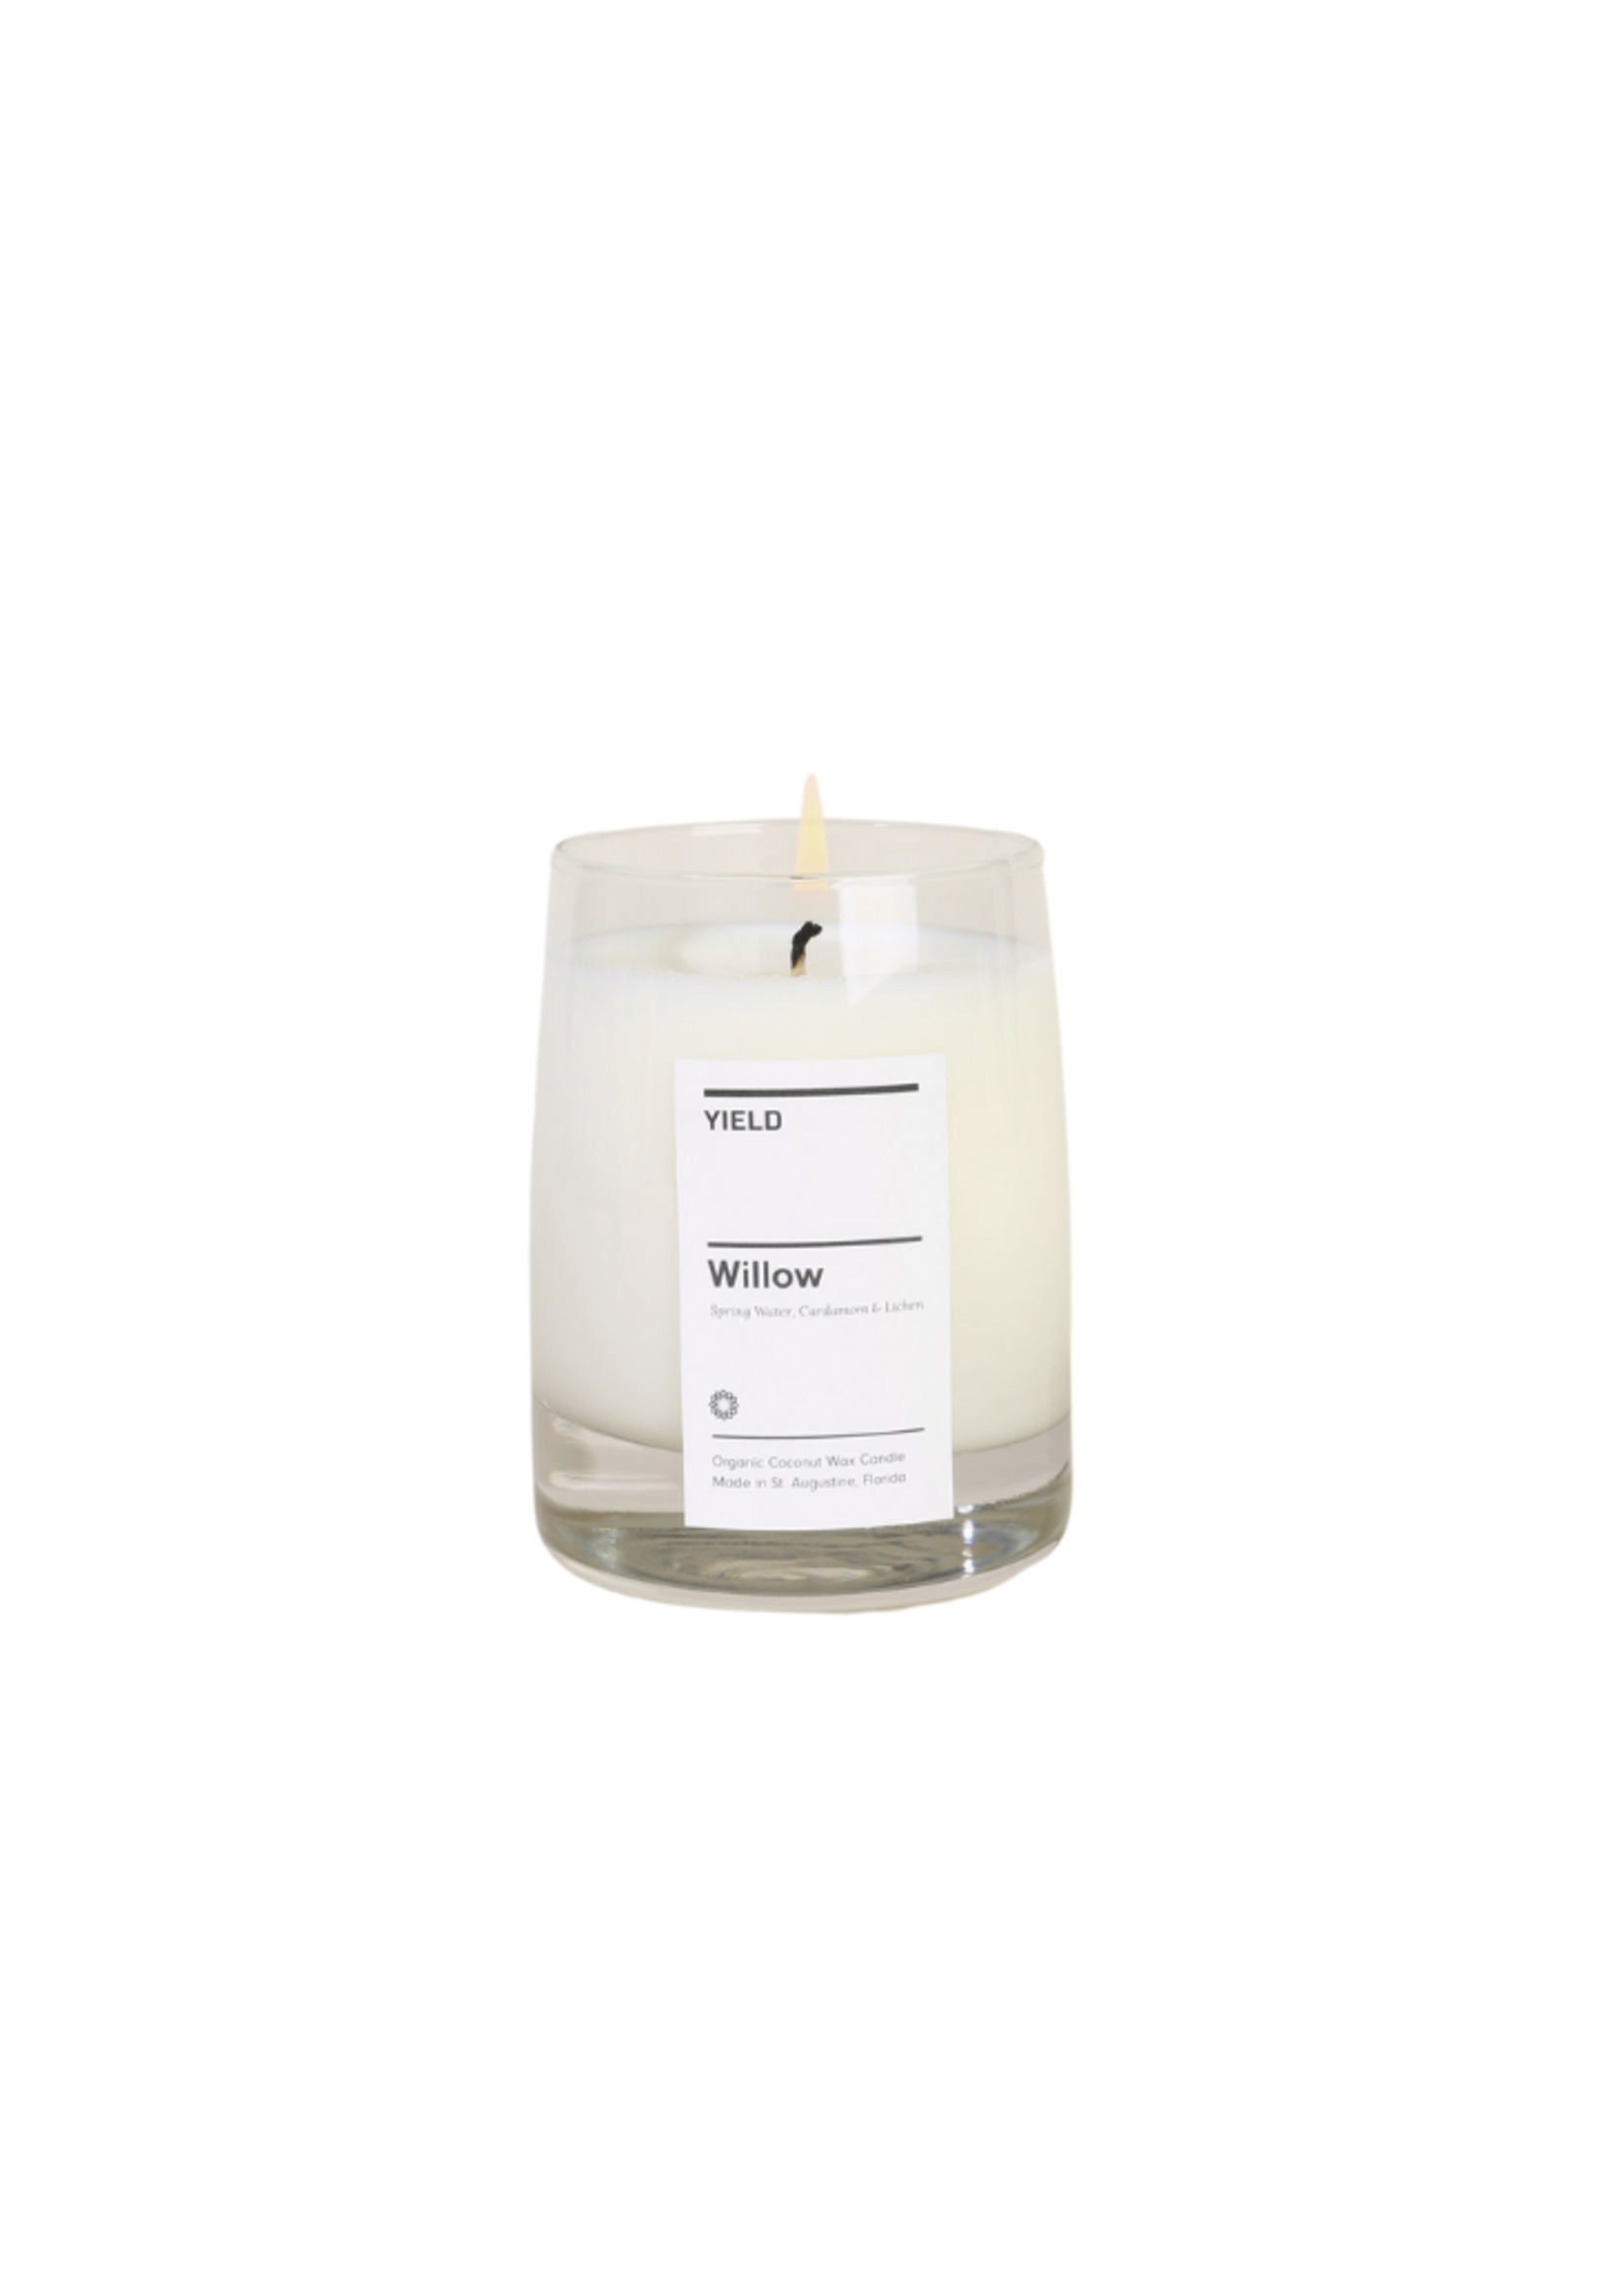 Yield Design Co Willow Candle